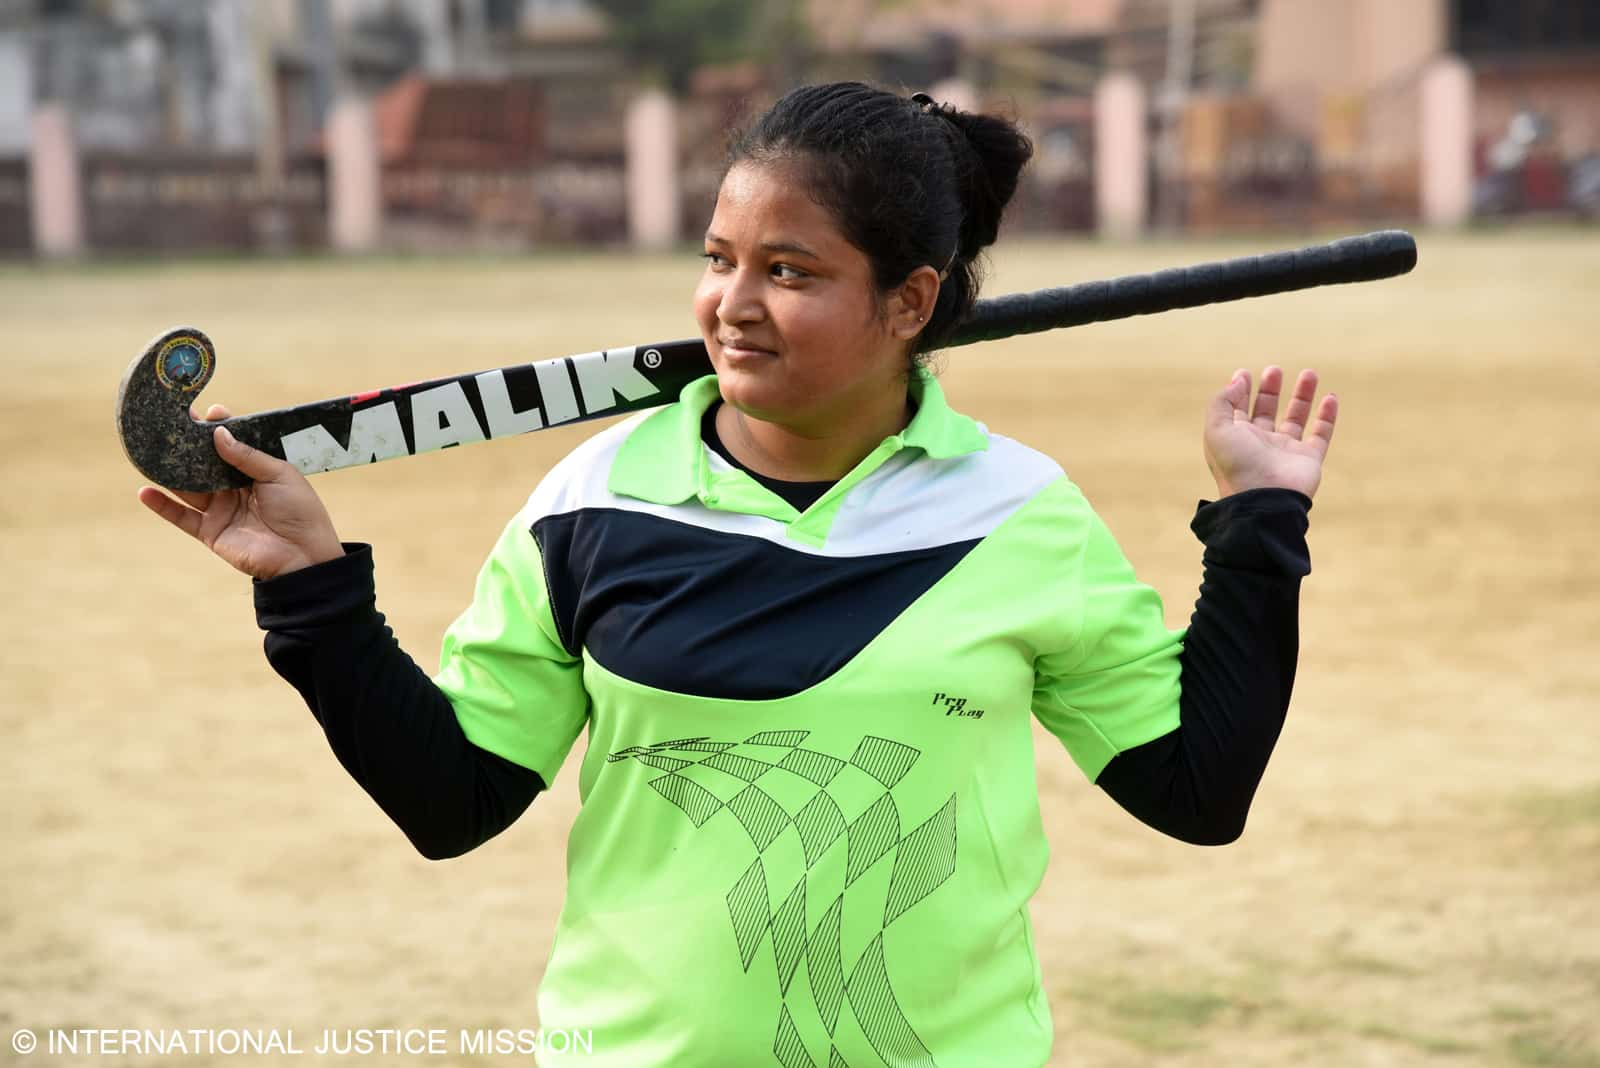 With help from Operation Blessing and the International Justice Mission, Pavi escaped trafficking and now plays professional field hockey.